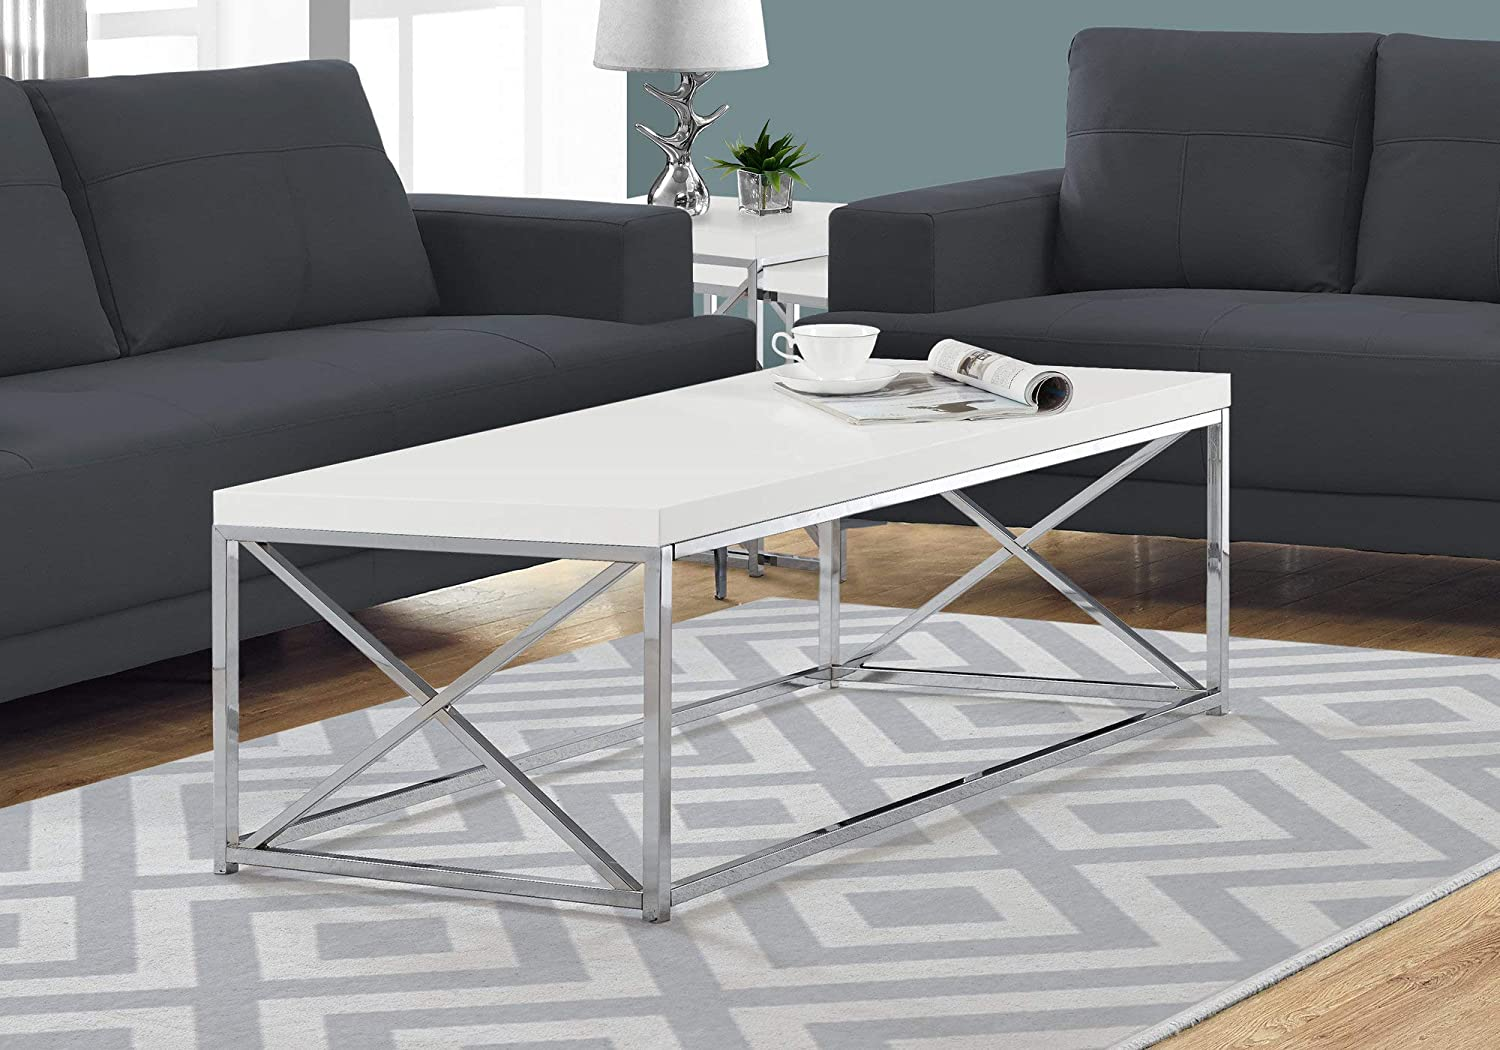 Monarch Specialties Modern Coffee Table for Living Room Center Table with Metal Frame, 44 Inch L, Glossy White / Chrome: Kitchen & Dining